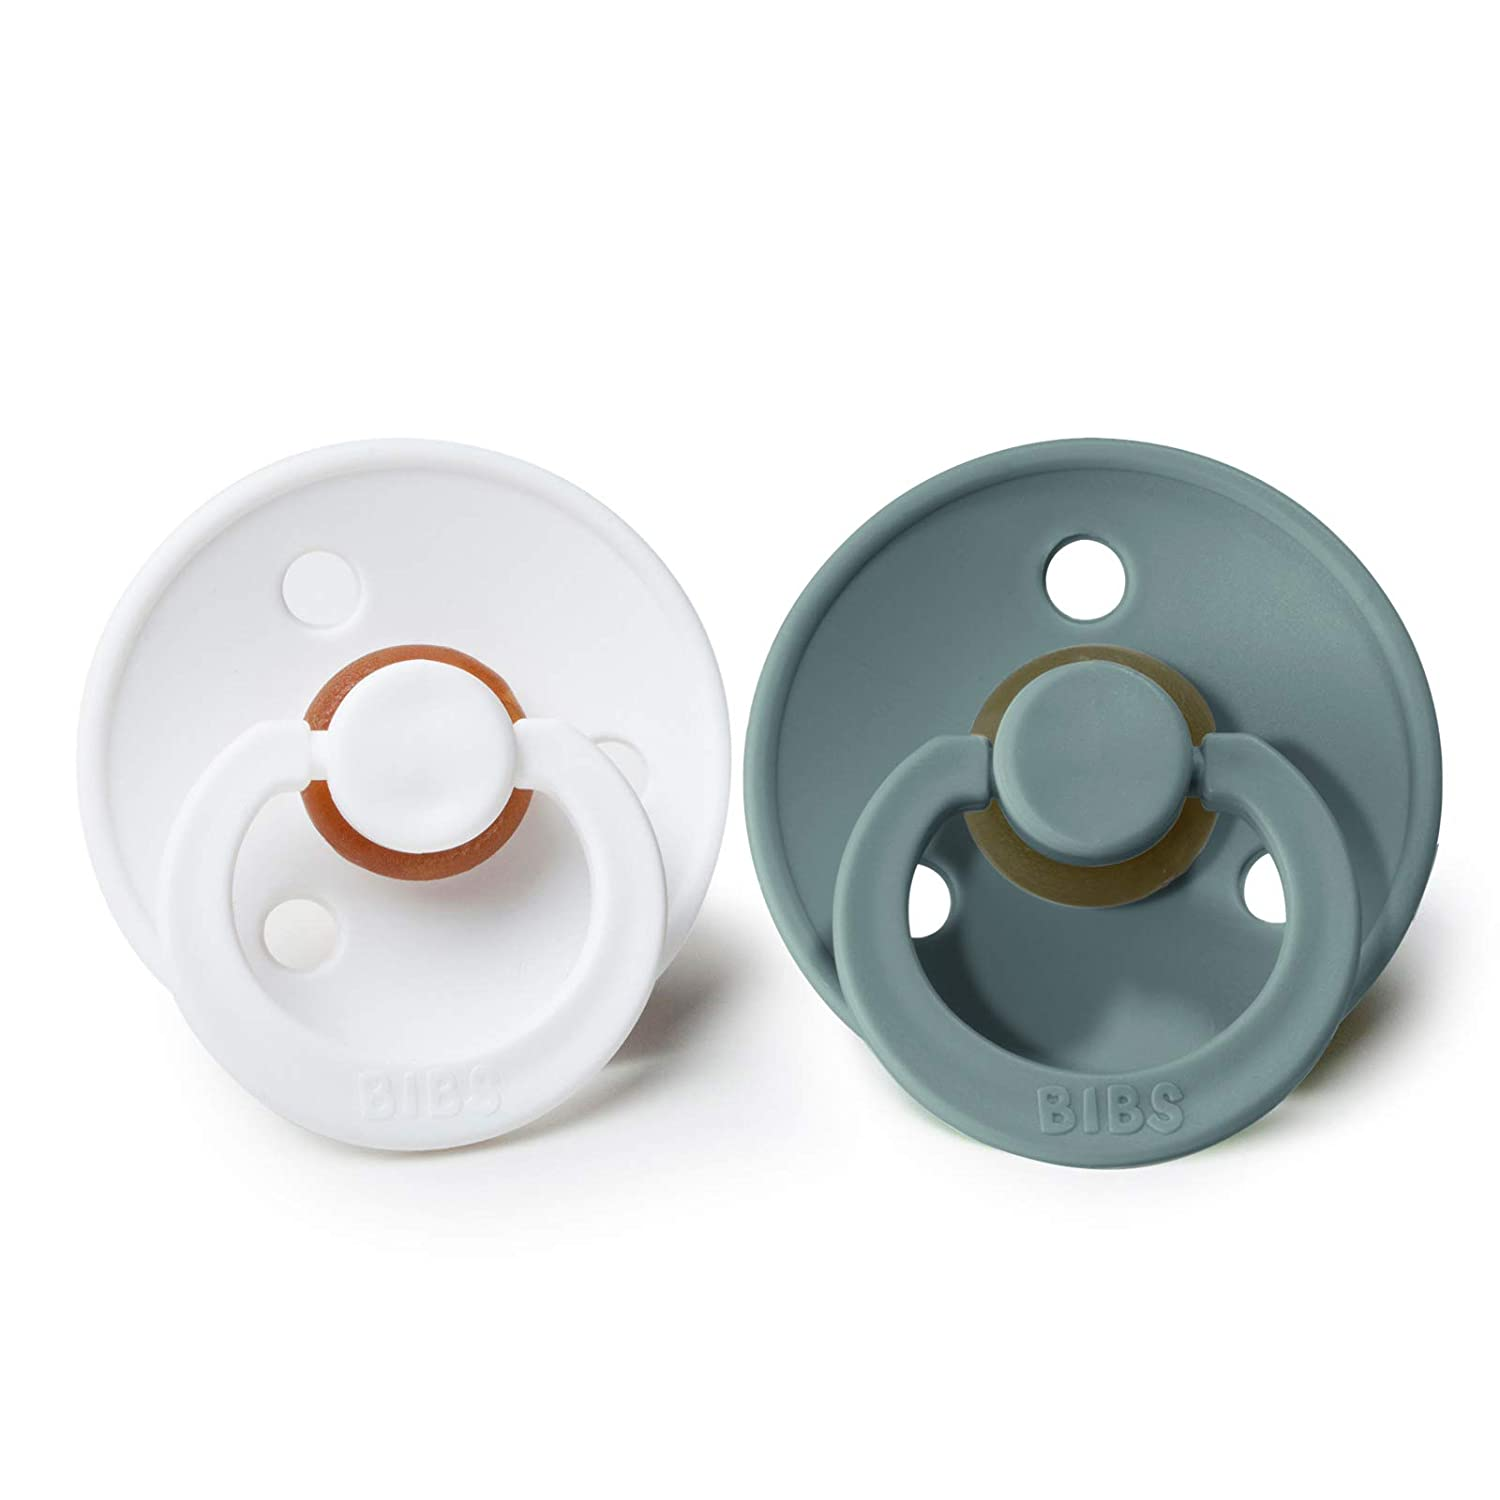 BIBS BPA-Free Natural Rubber Baby Pacifier | Made in Denmark (Island Sea/White, 0-6 Months) 2-Pack